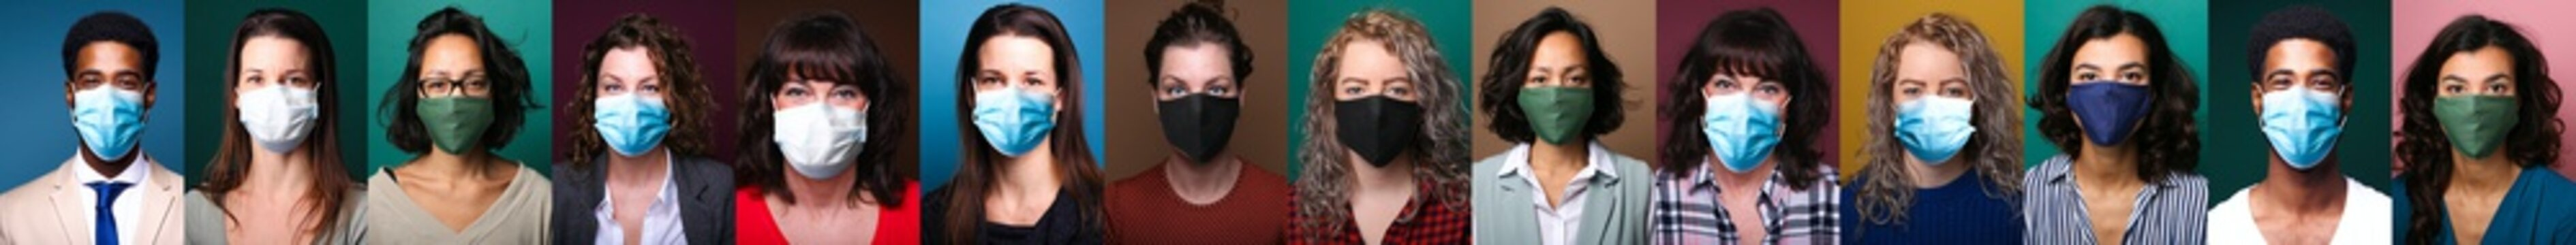 People who wear masks for safety from contamination